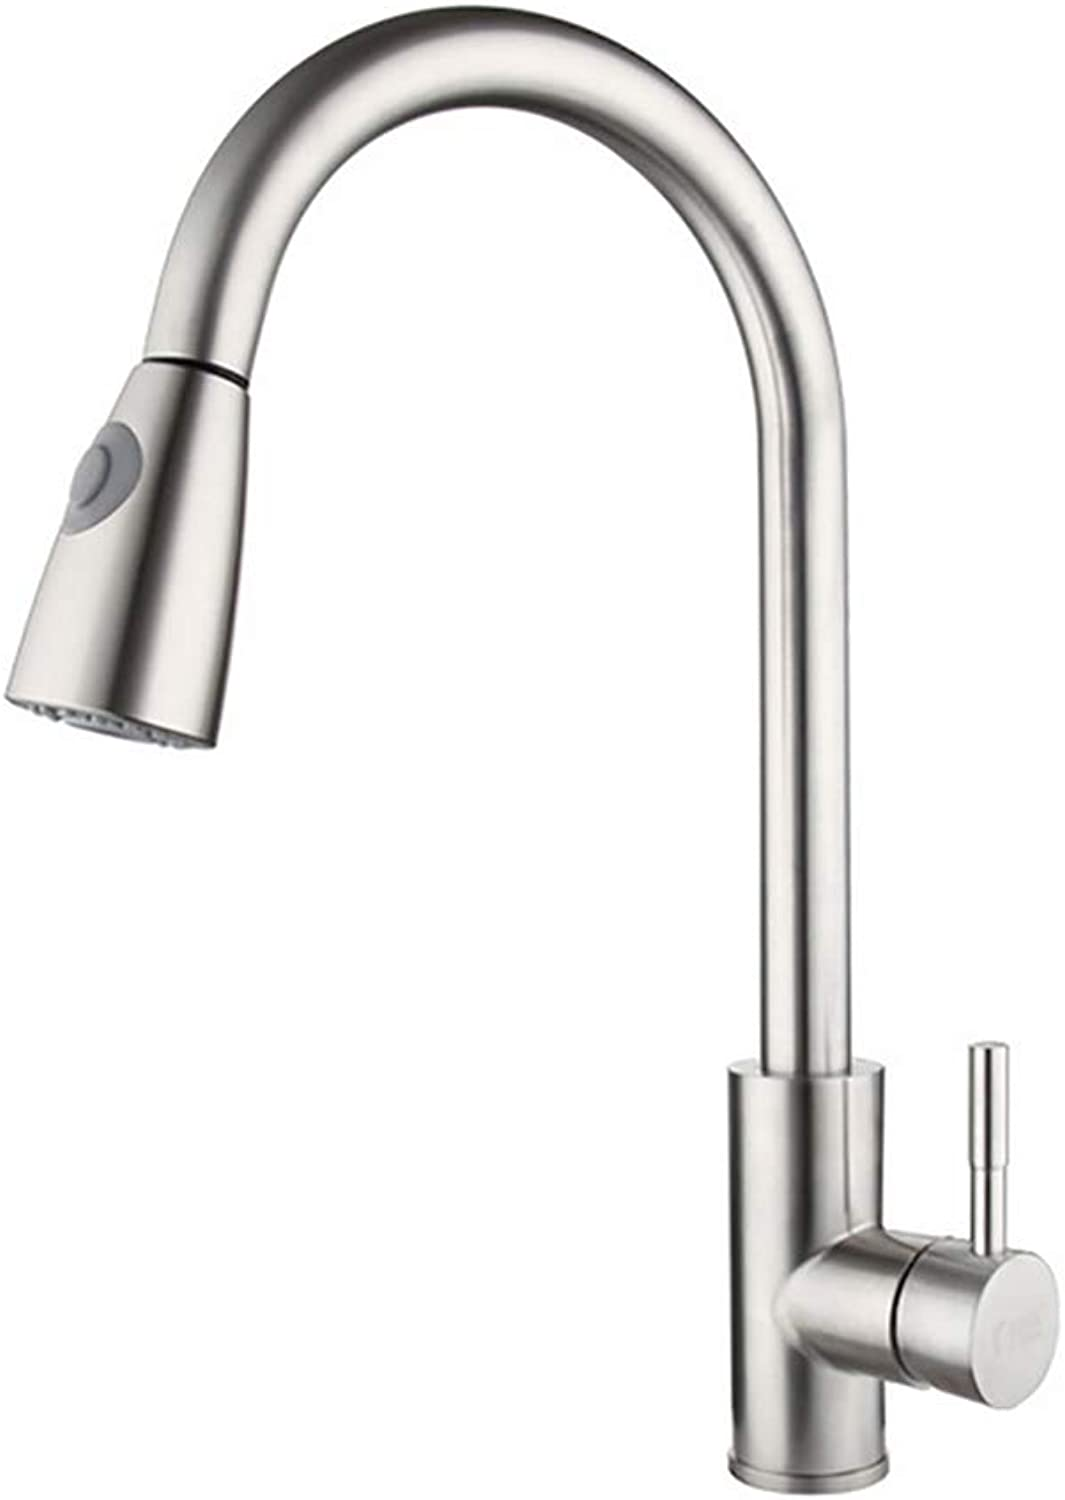 Austinstore Kitchen Faucet Single Handle High Arch Pull Out Kitchen Sink Faucets Mixer Tap